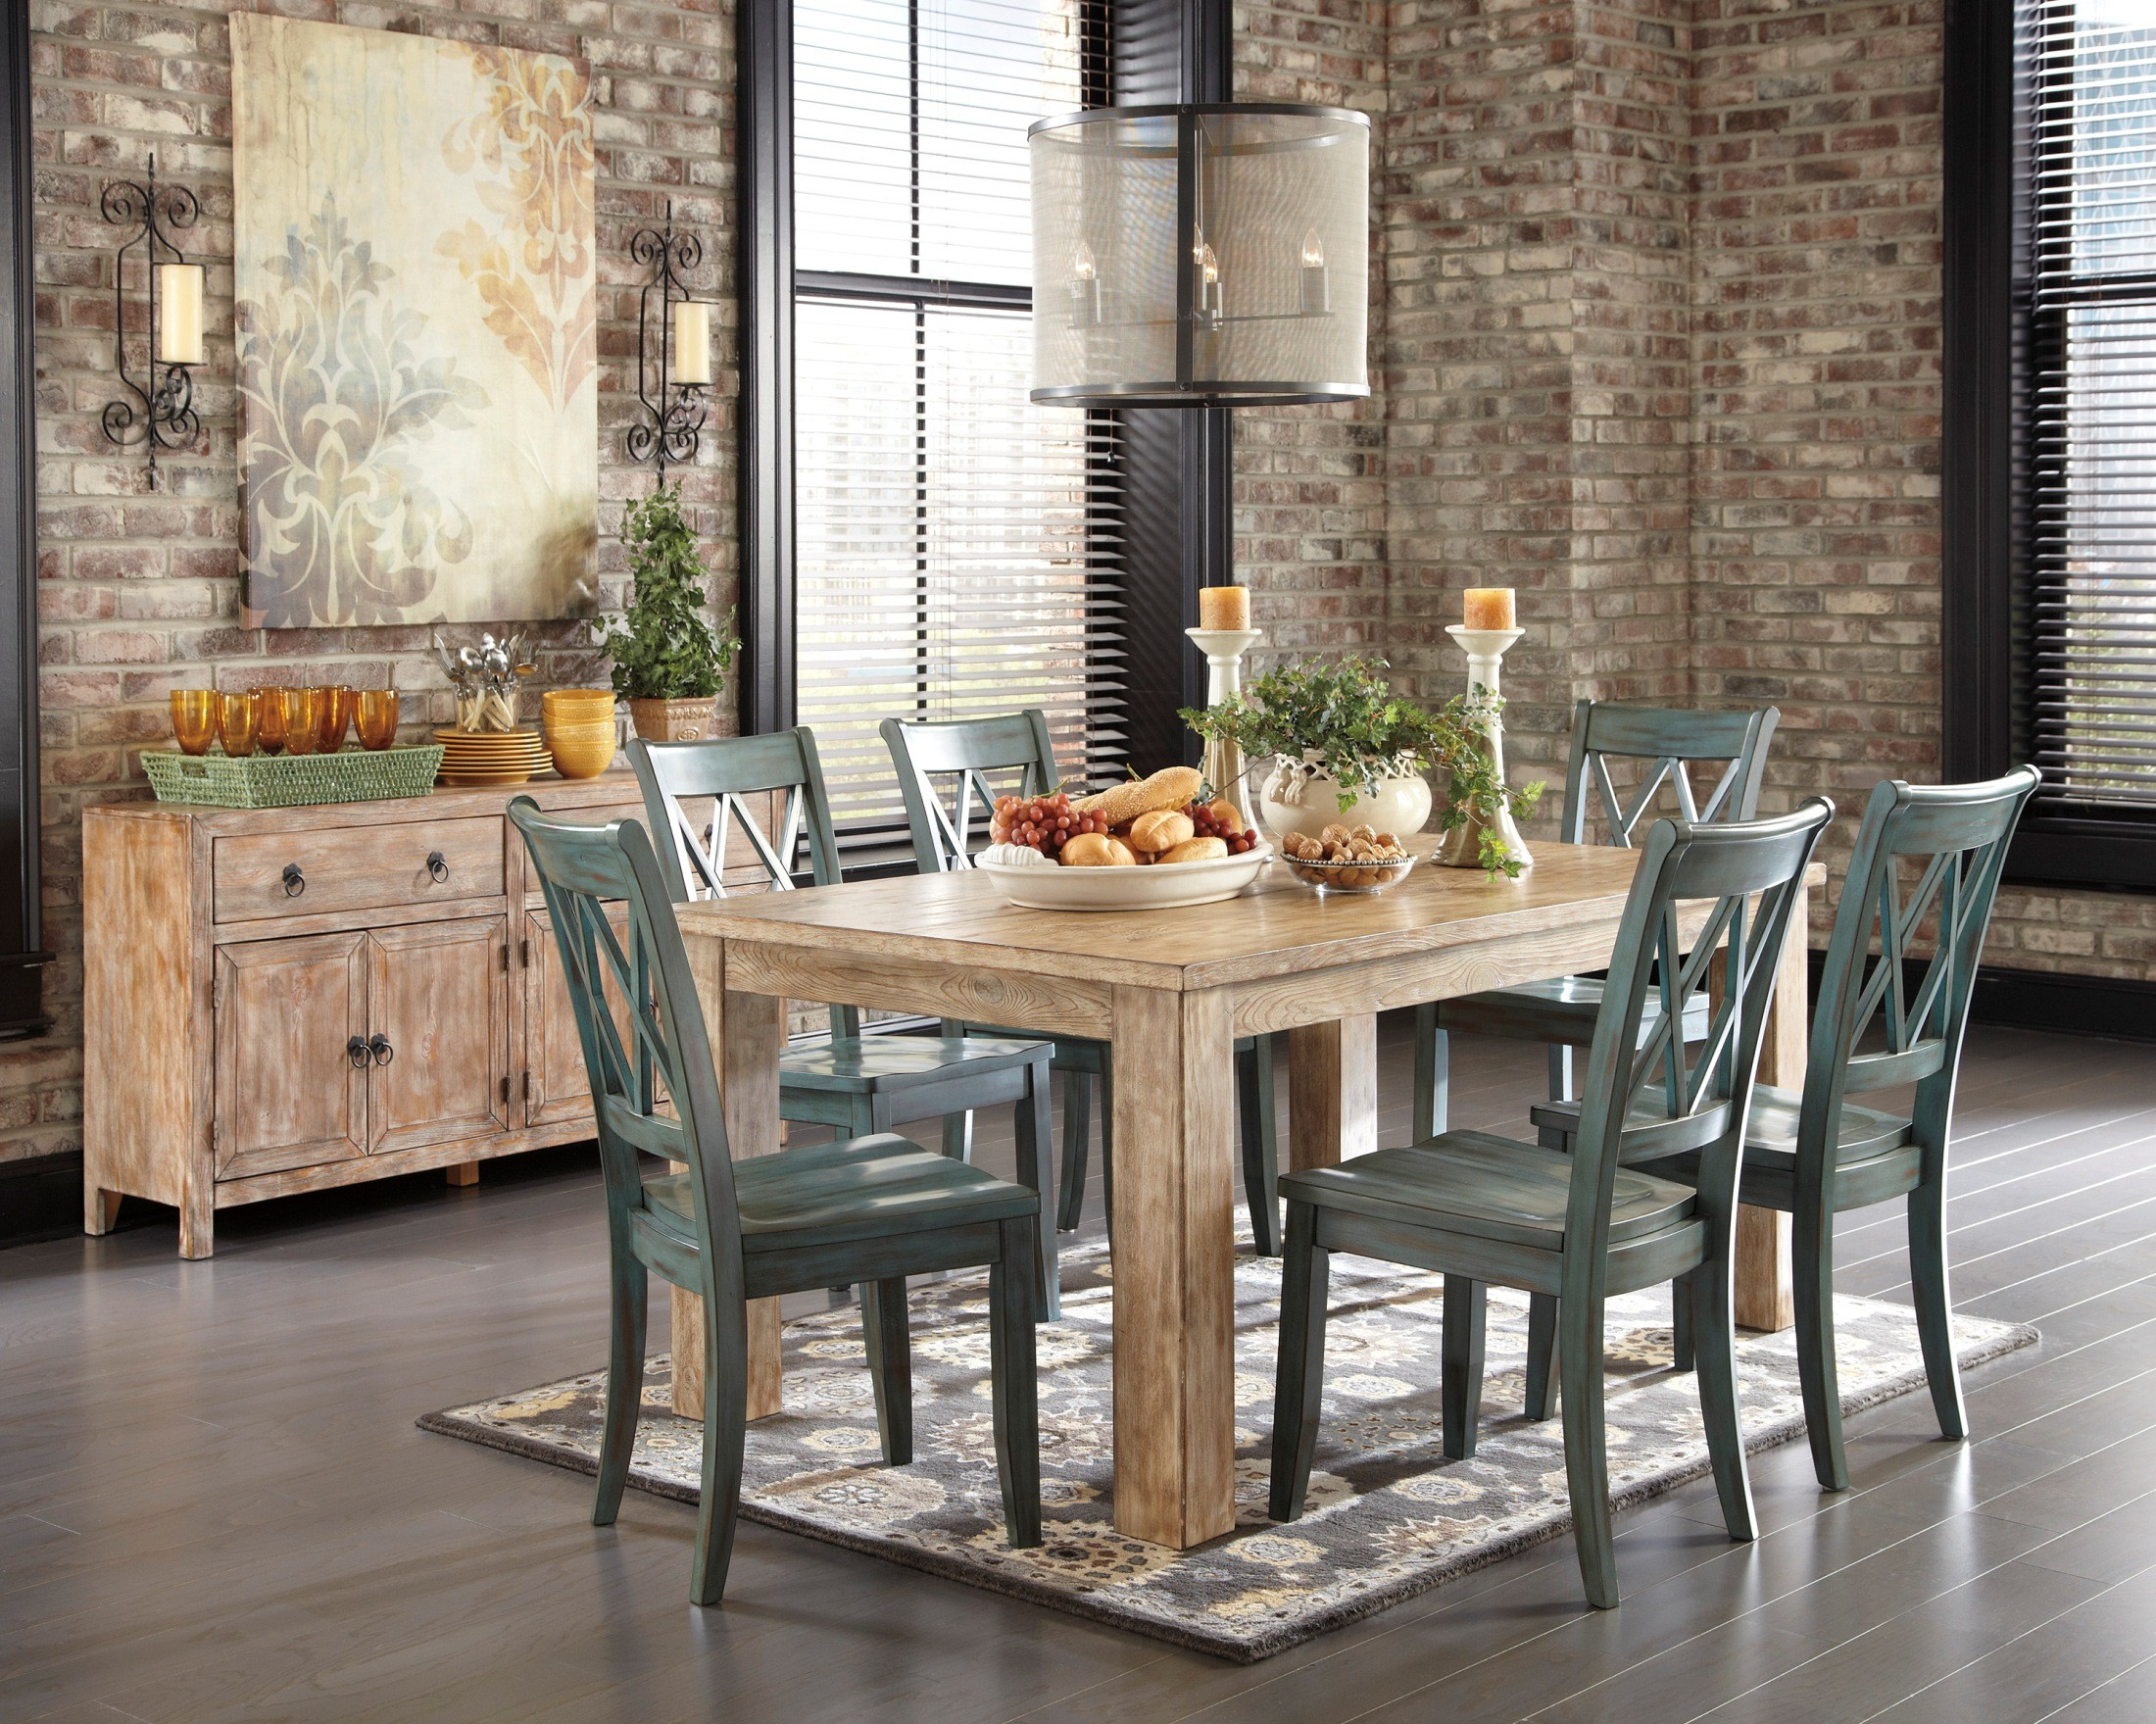 Ashley dining room furniture - Mestler Driftwood Dining Room Set From Ashley D540 225 Coleman Furniture